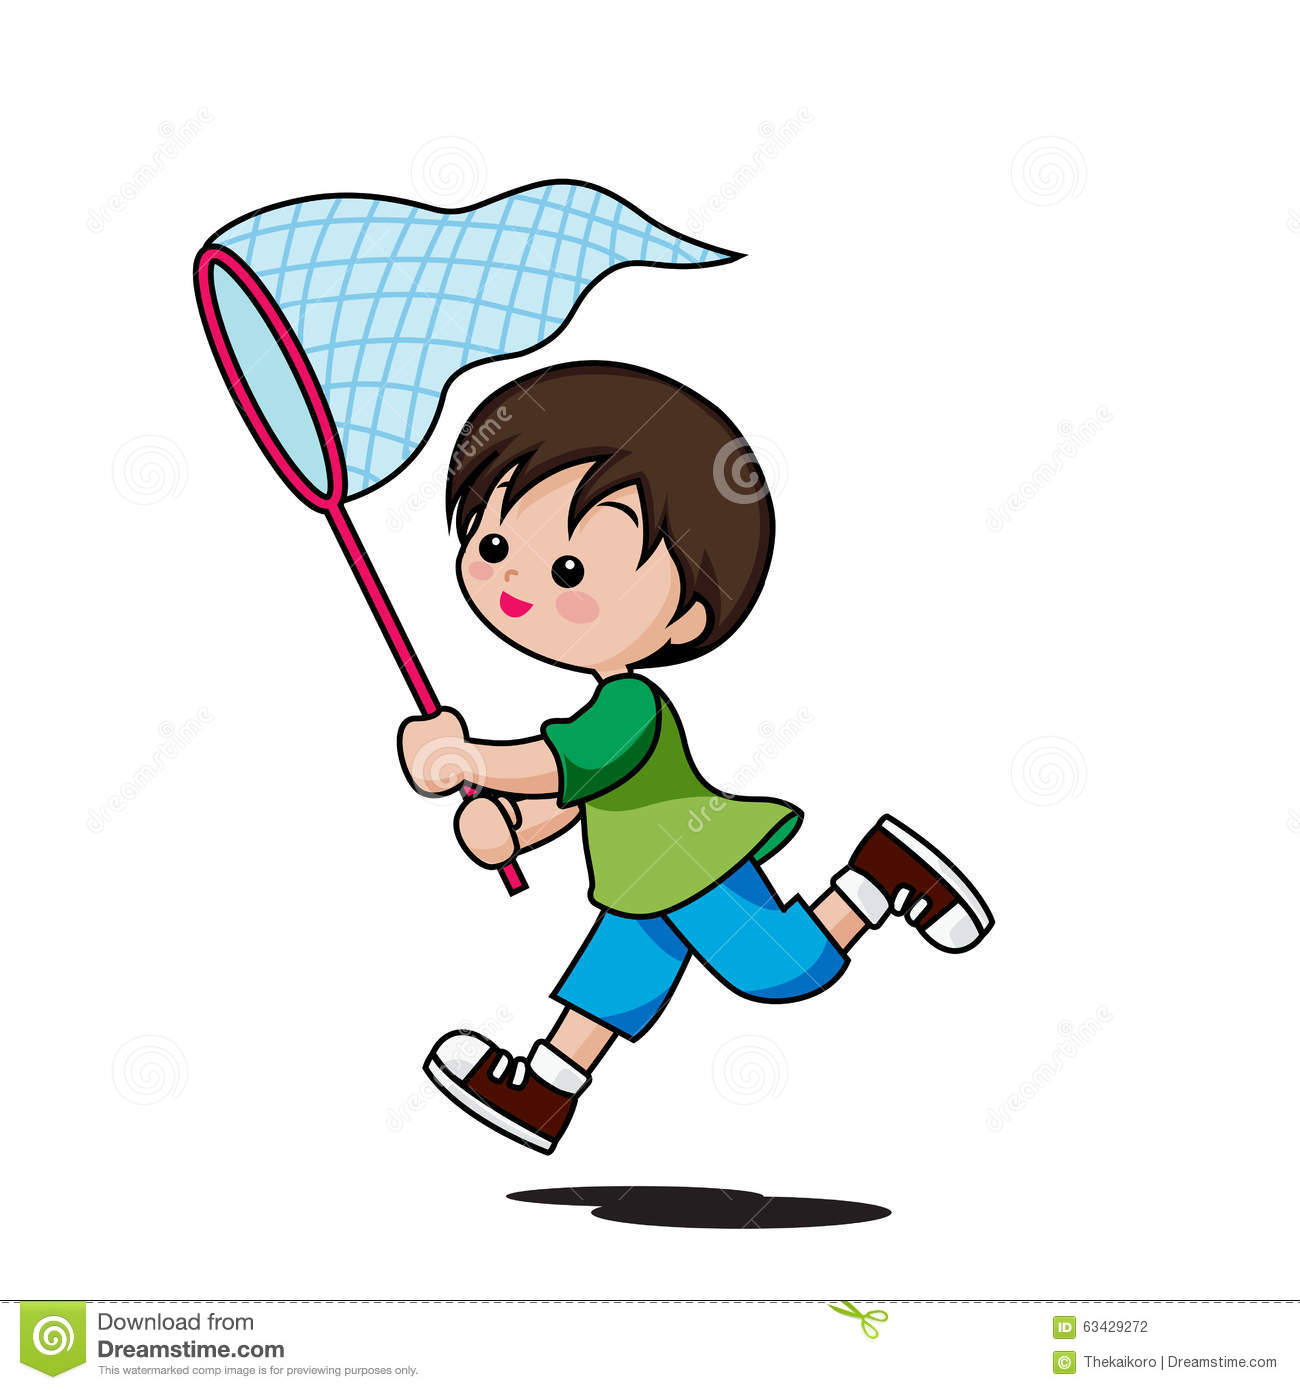 Cute little boy cartoon running to catch insects isolated on white background